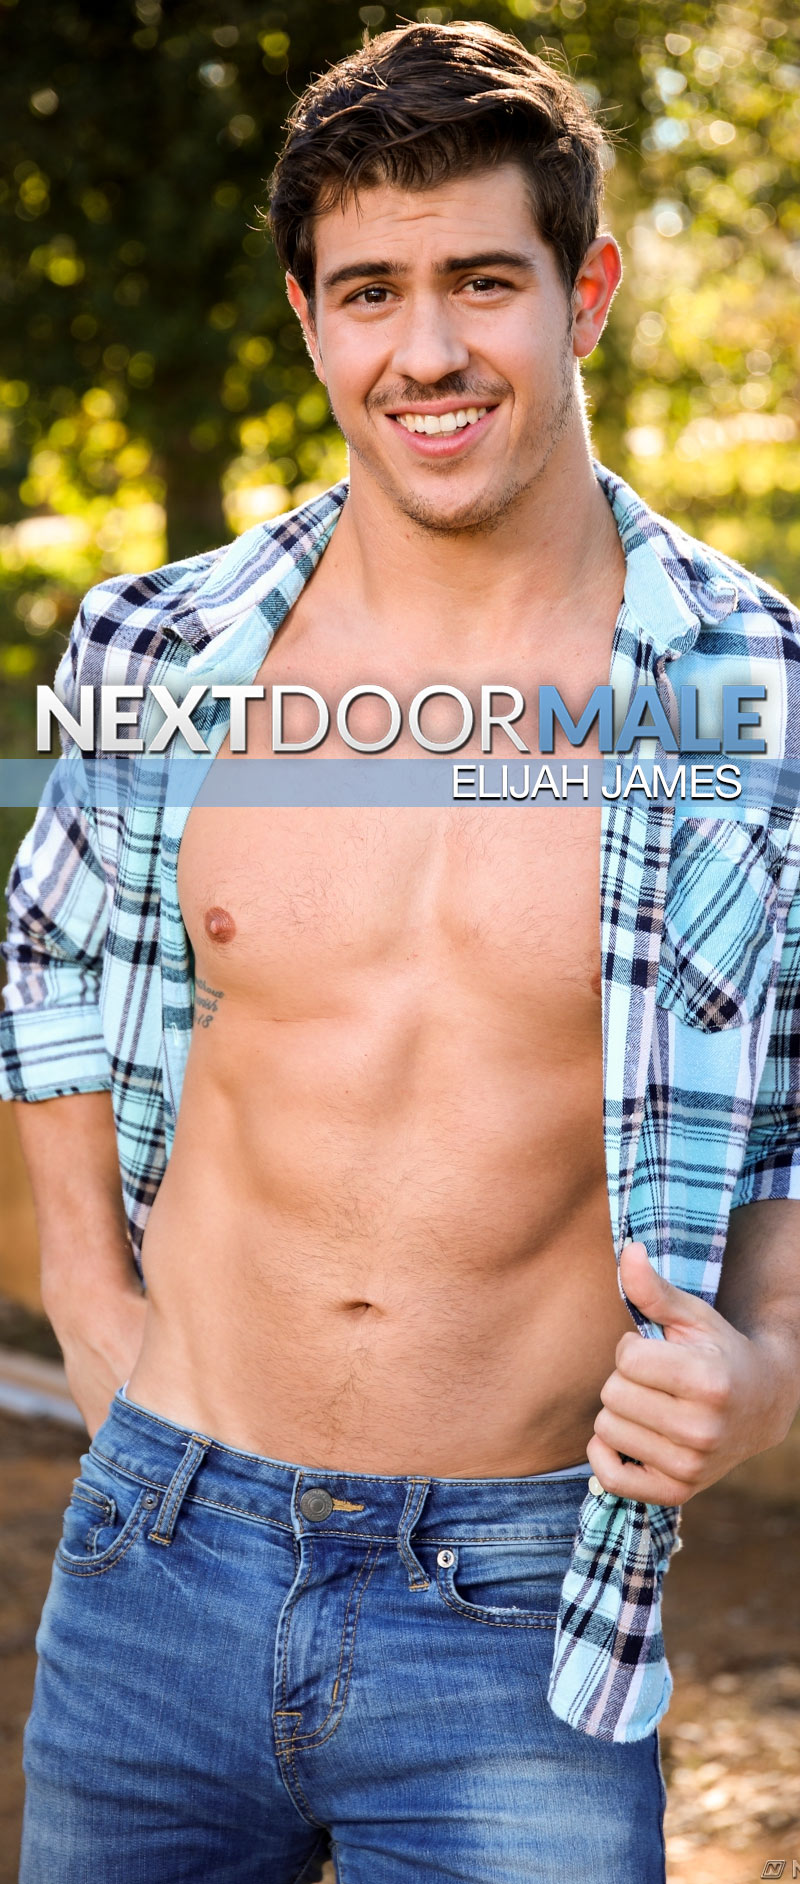 Elijah James at Next Door Male